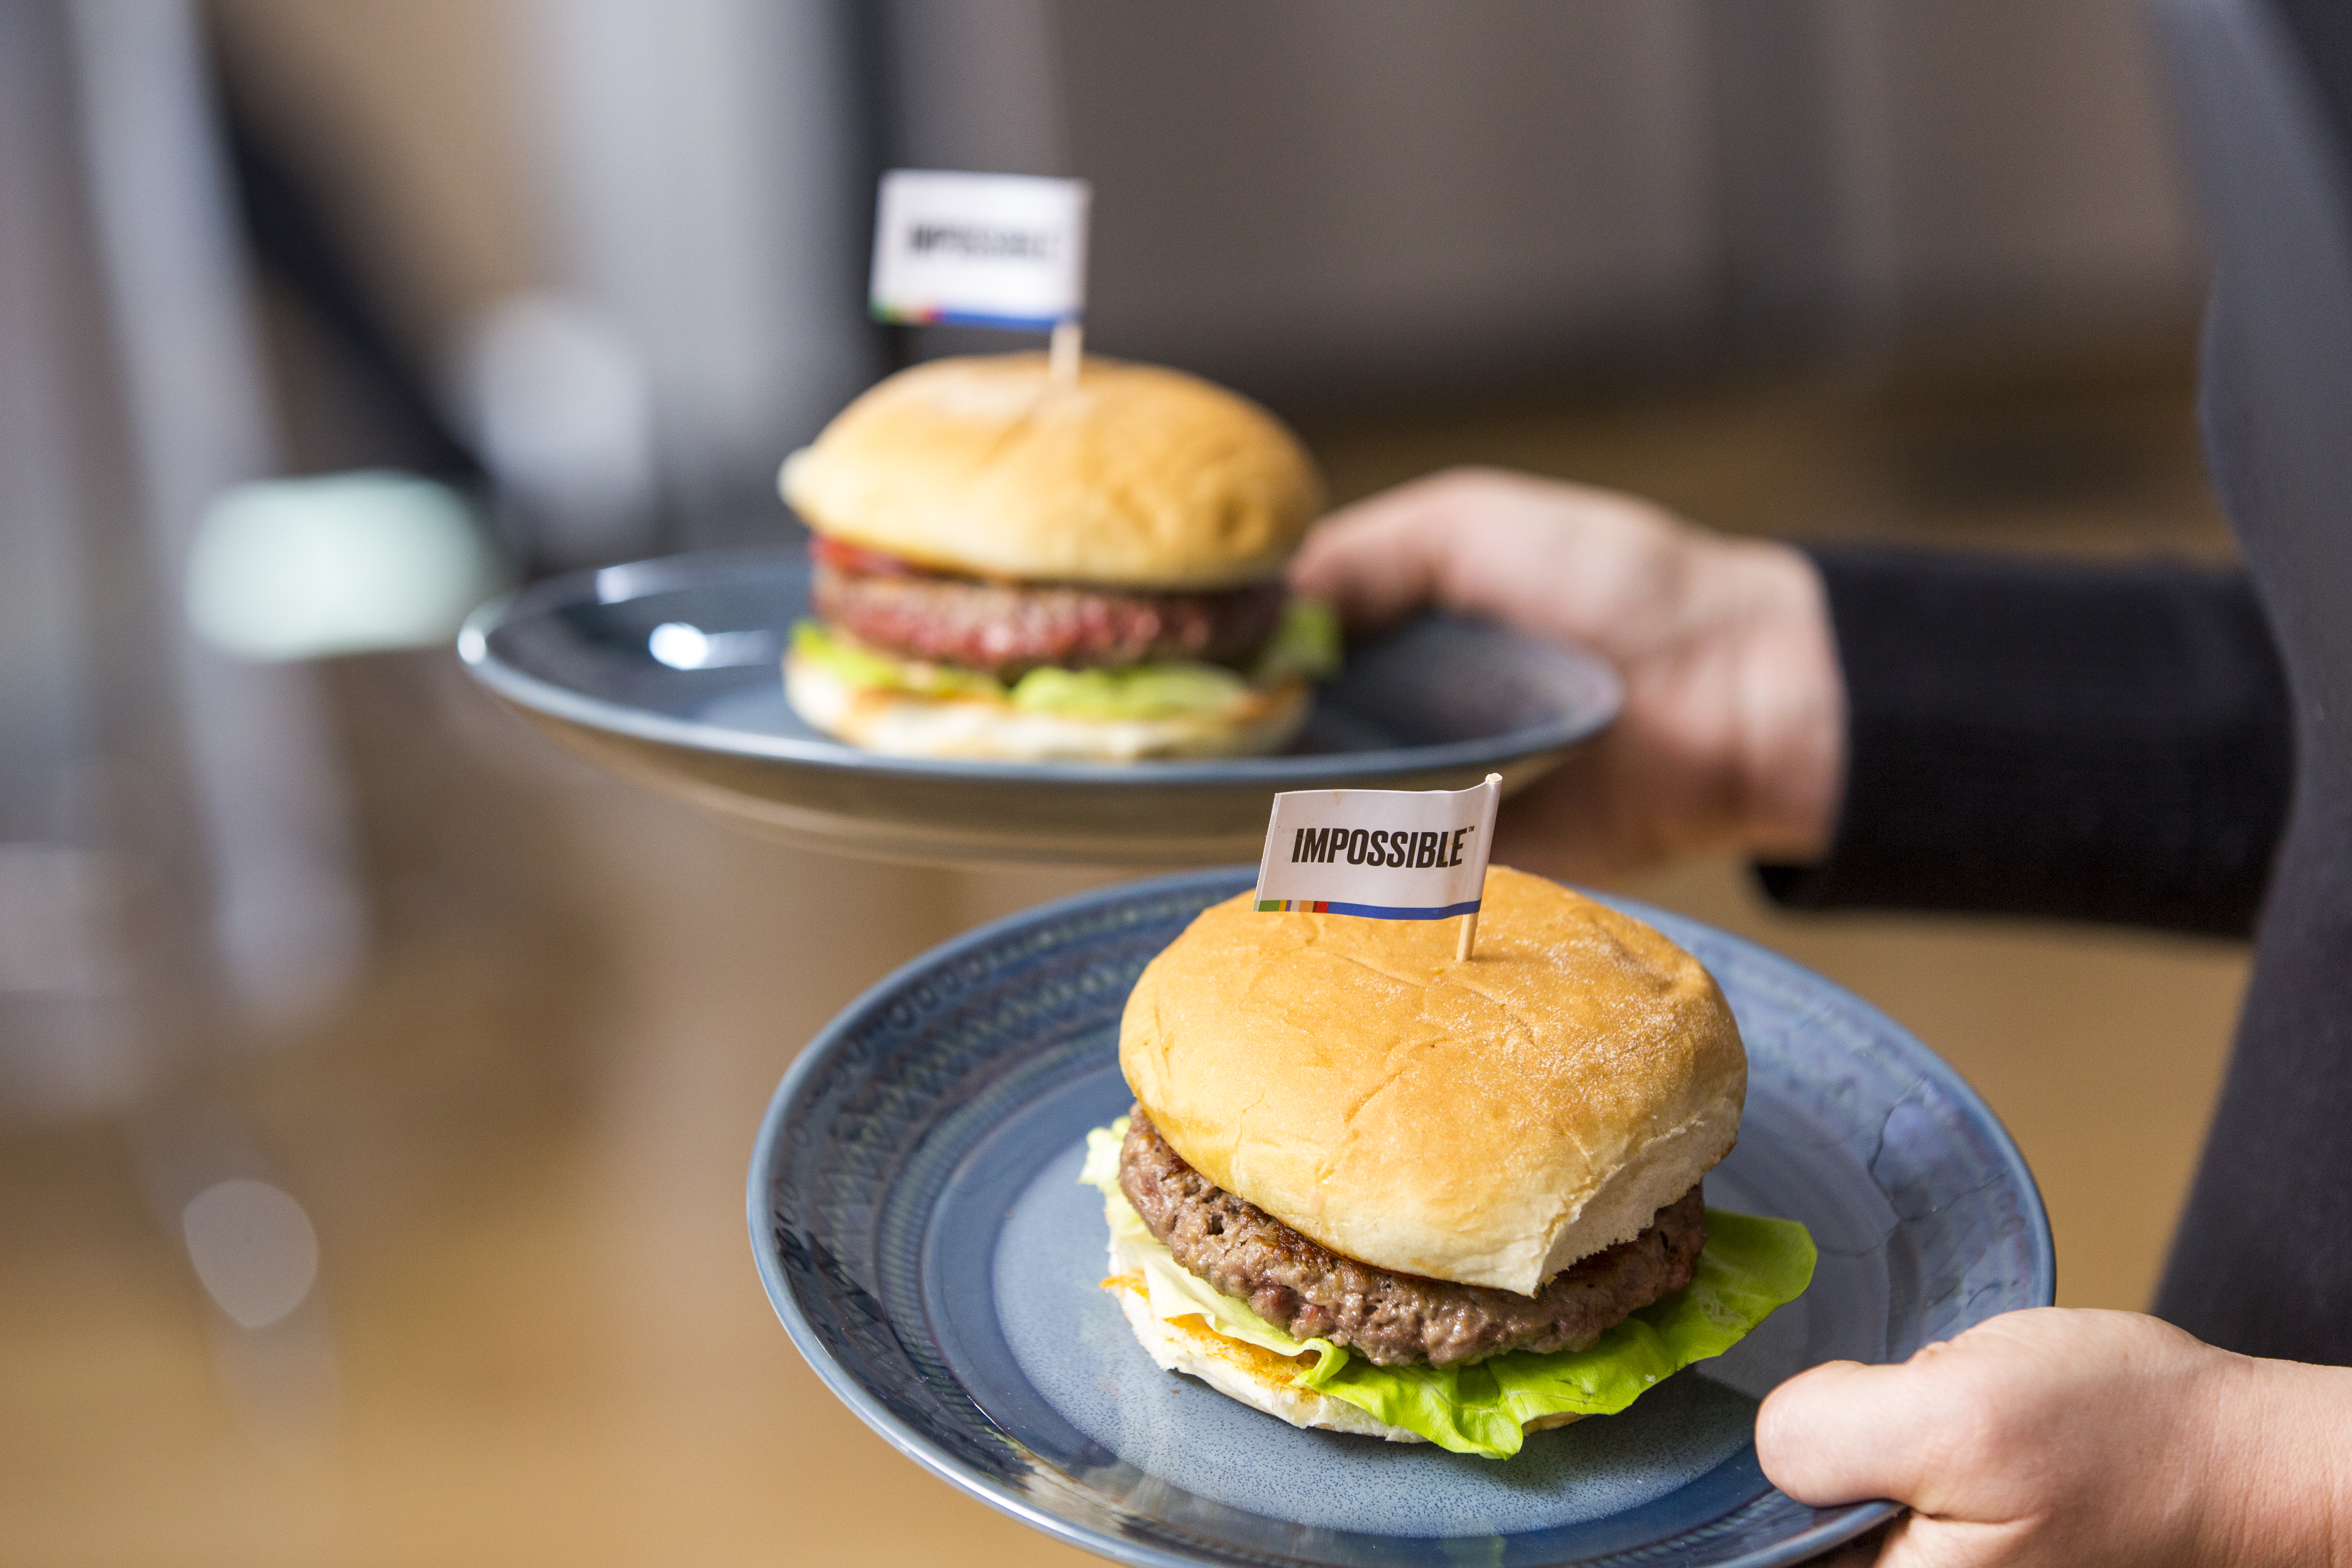 EU should clarify rules for plant burgers and lab meat